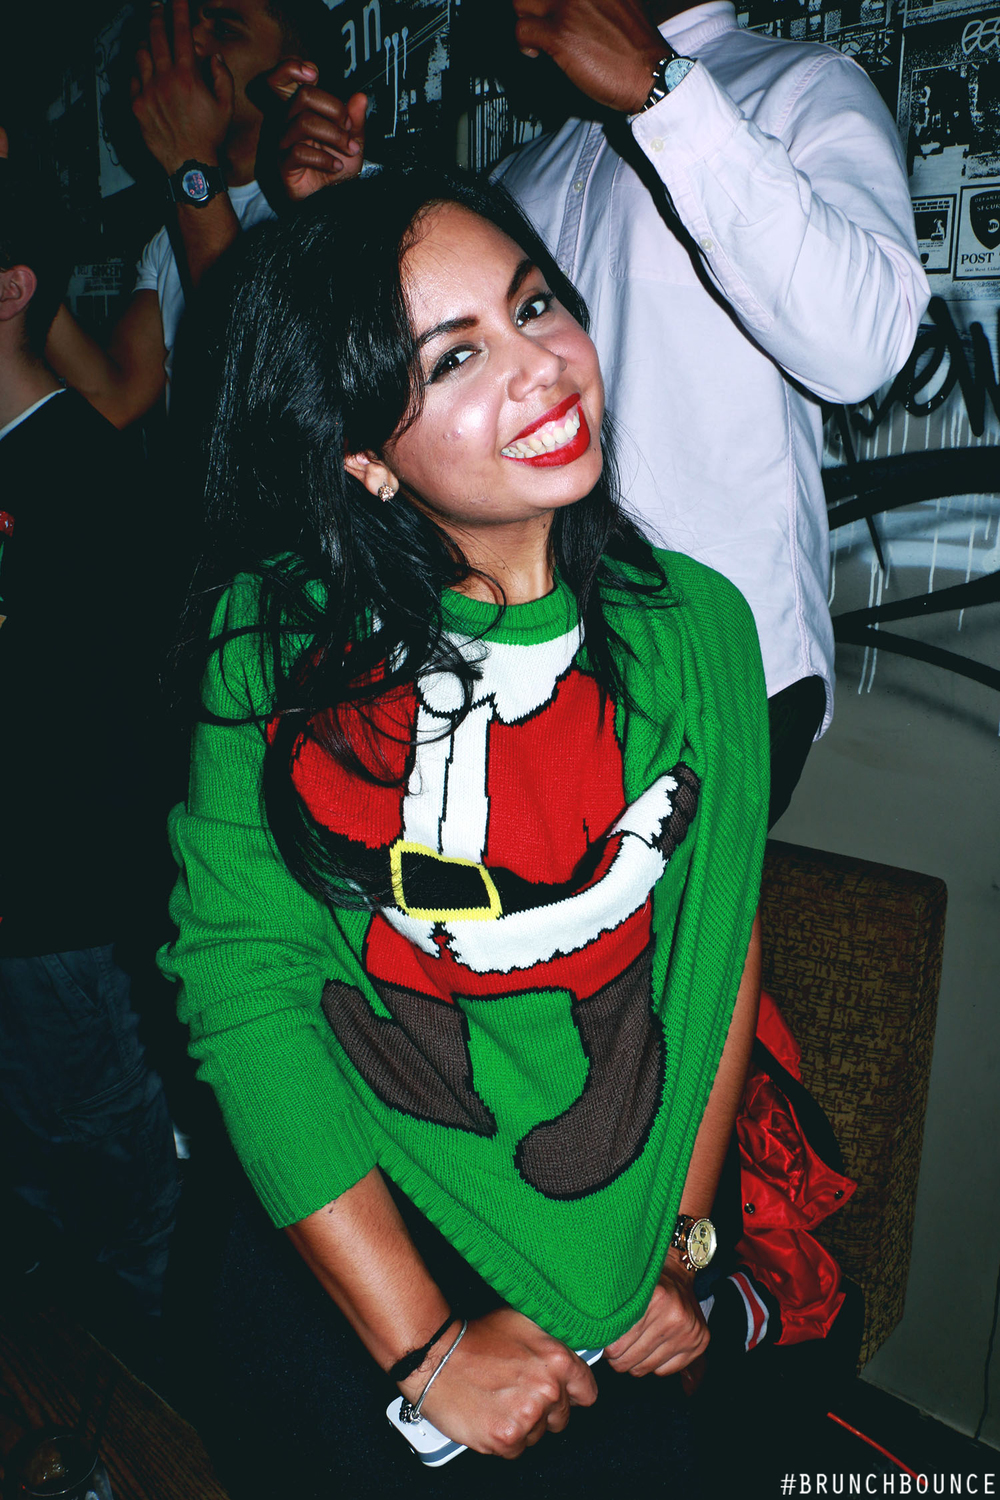 brunchbounce-ugly-christmas-sweater-party-122014_15896972287_o.jpg